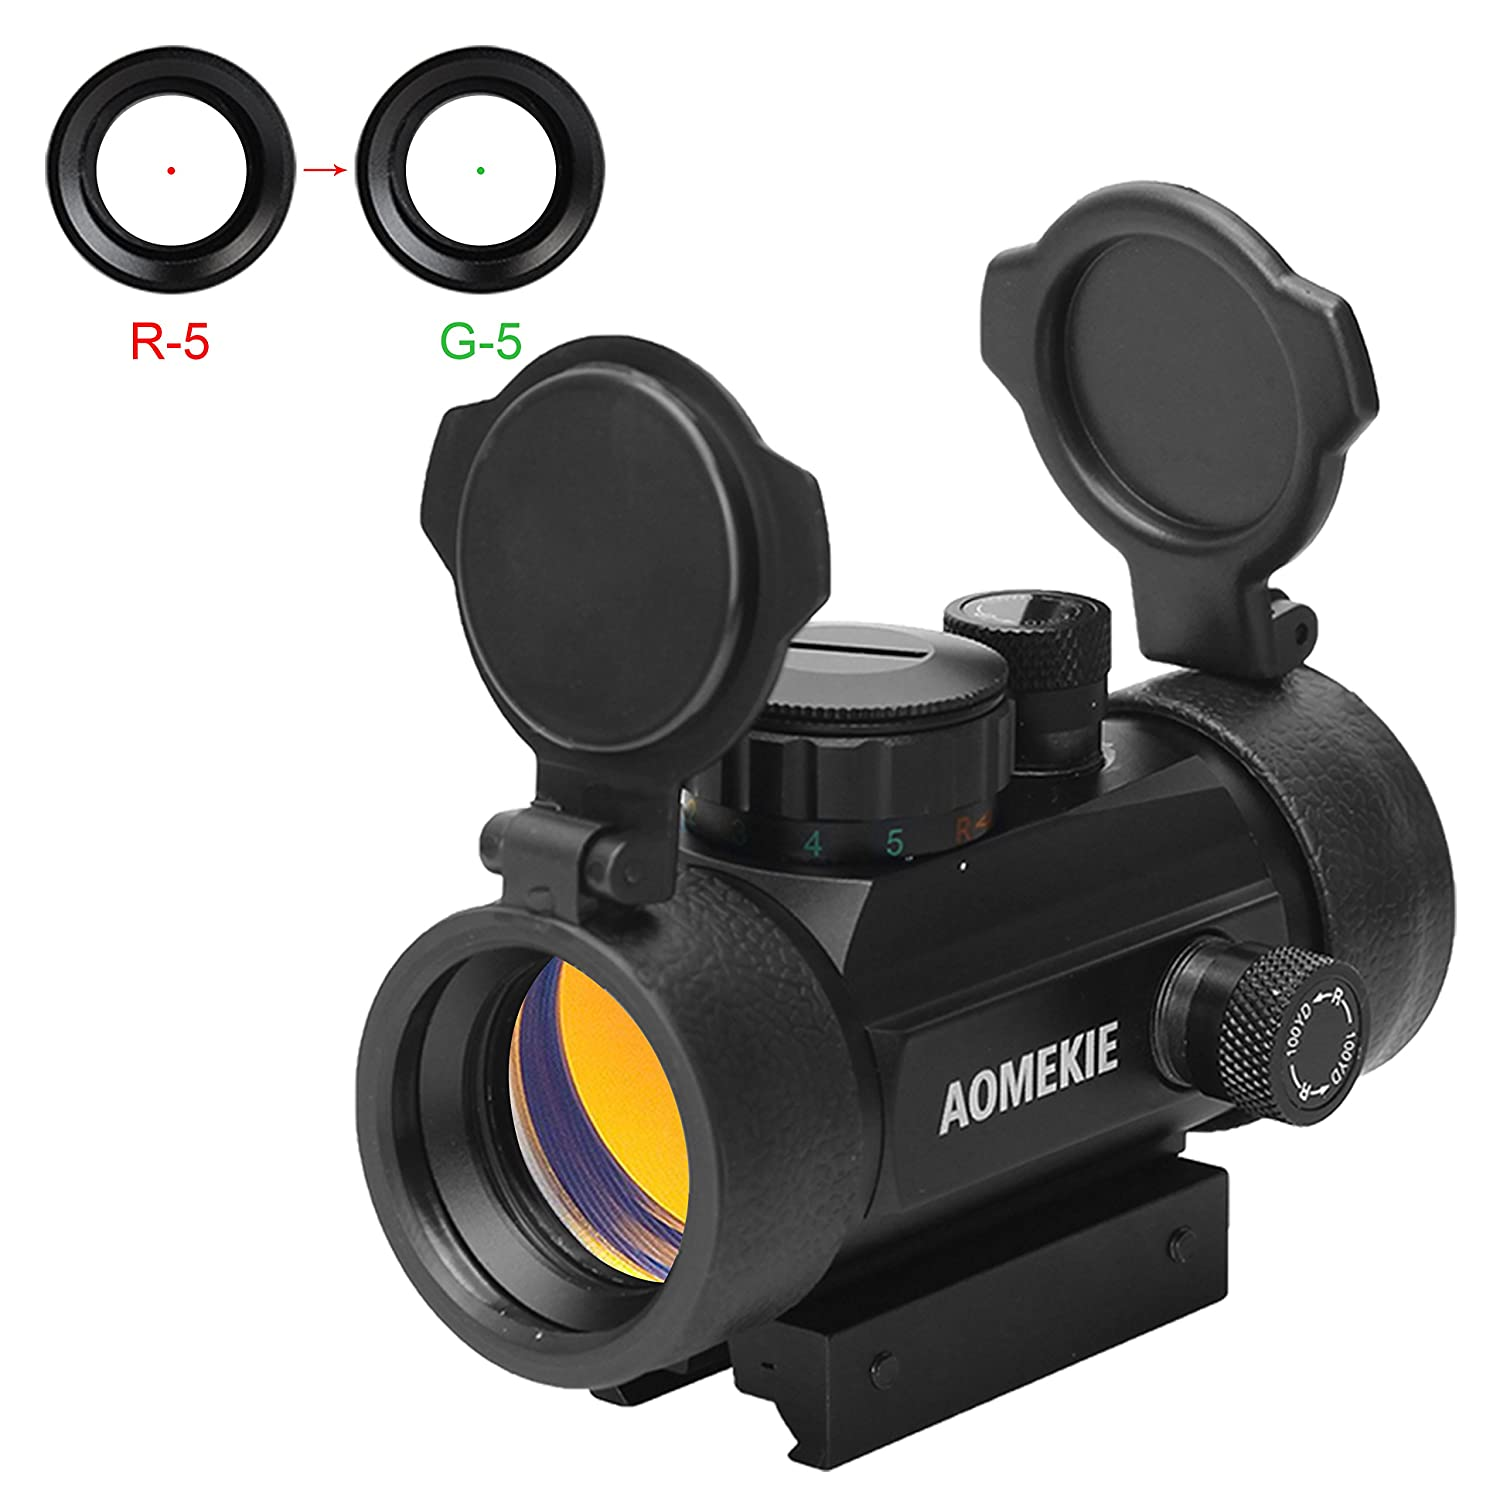 Aomekie 30mm Reflex Red Green Dot Sight Scope with Flip Up Lens Cover Cap